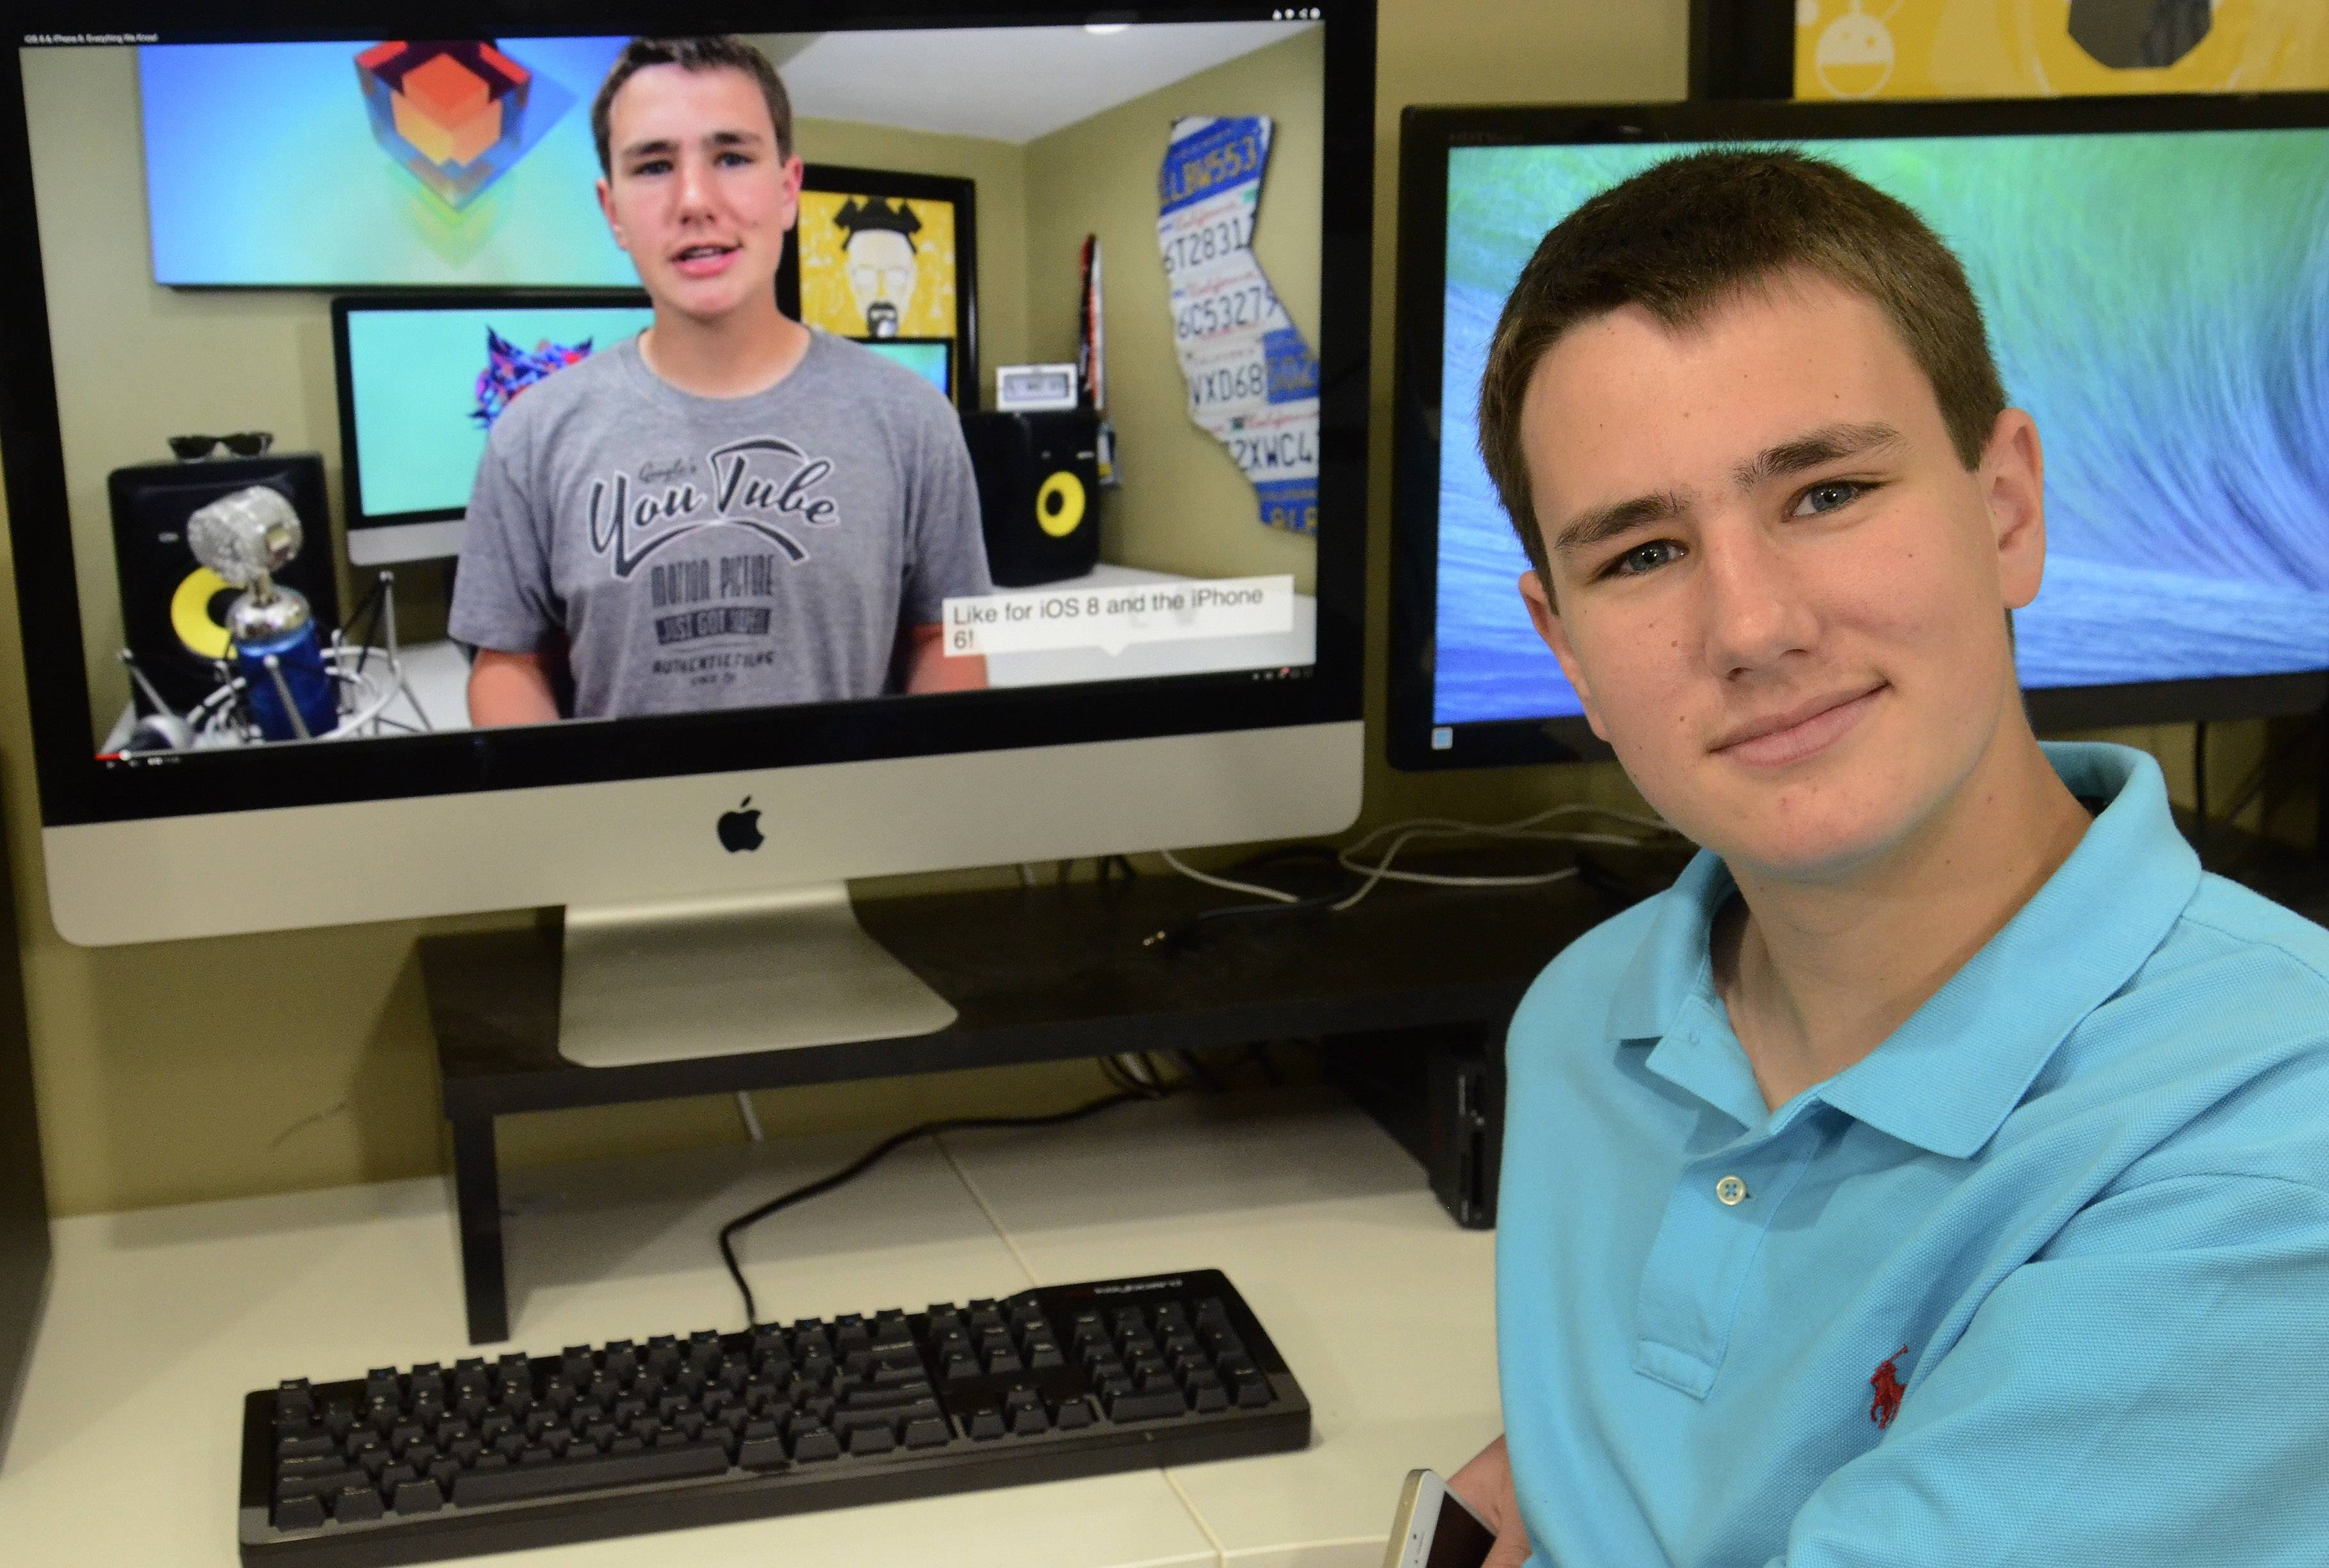 Keaton Keller, 17, says his business, TechSmartt, has never been a chore. The company provides reviews on YouTube of dozens of consumer electronics, from phones and tablets to cameras.